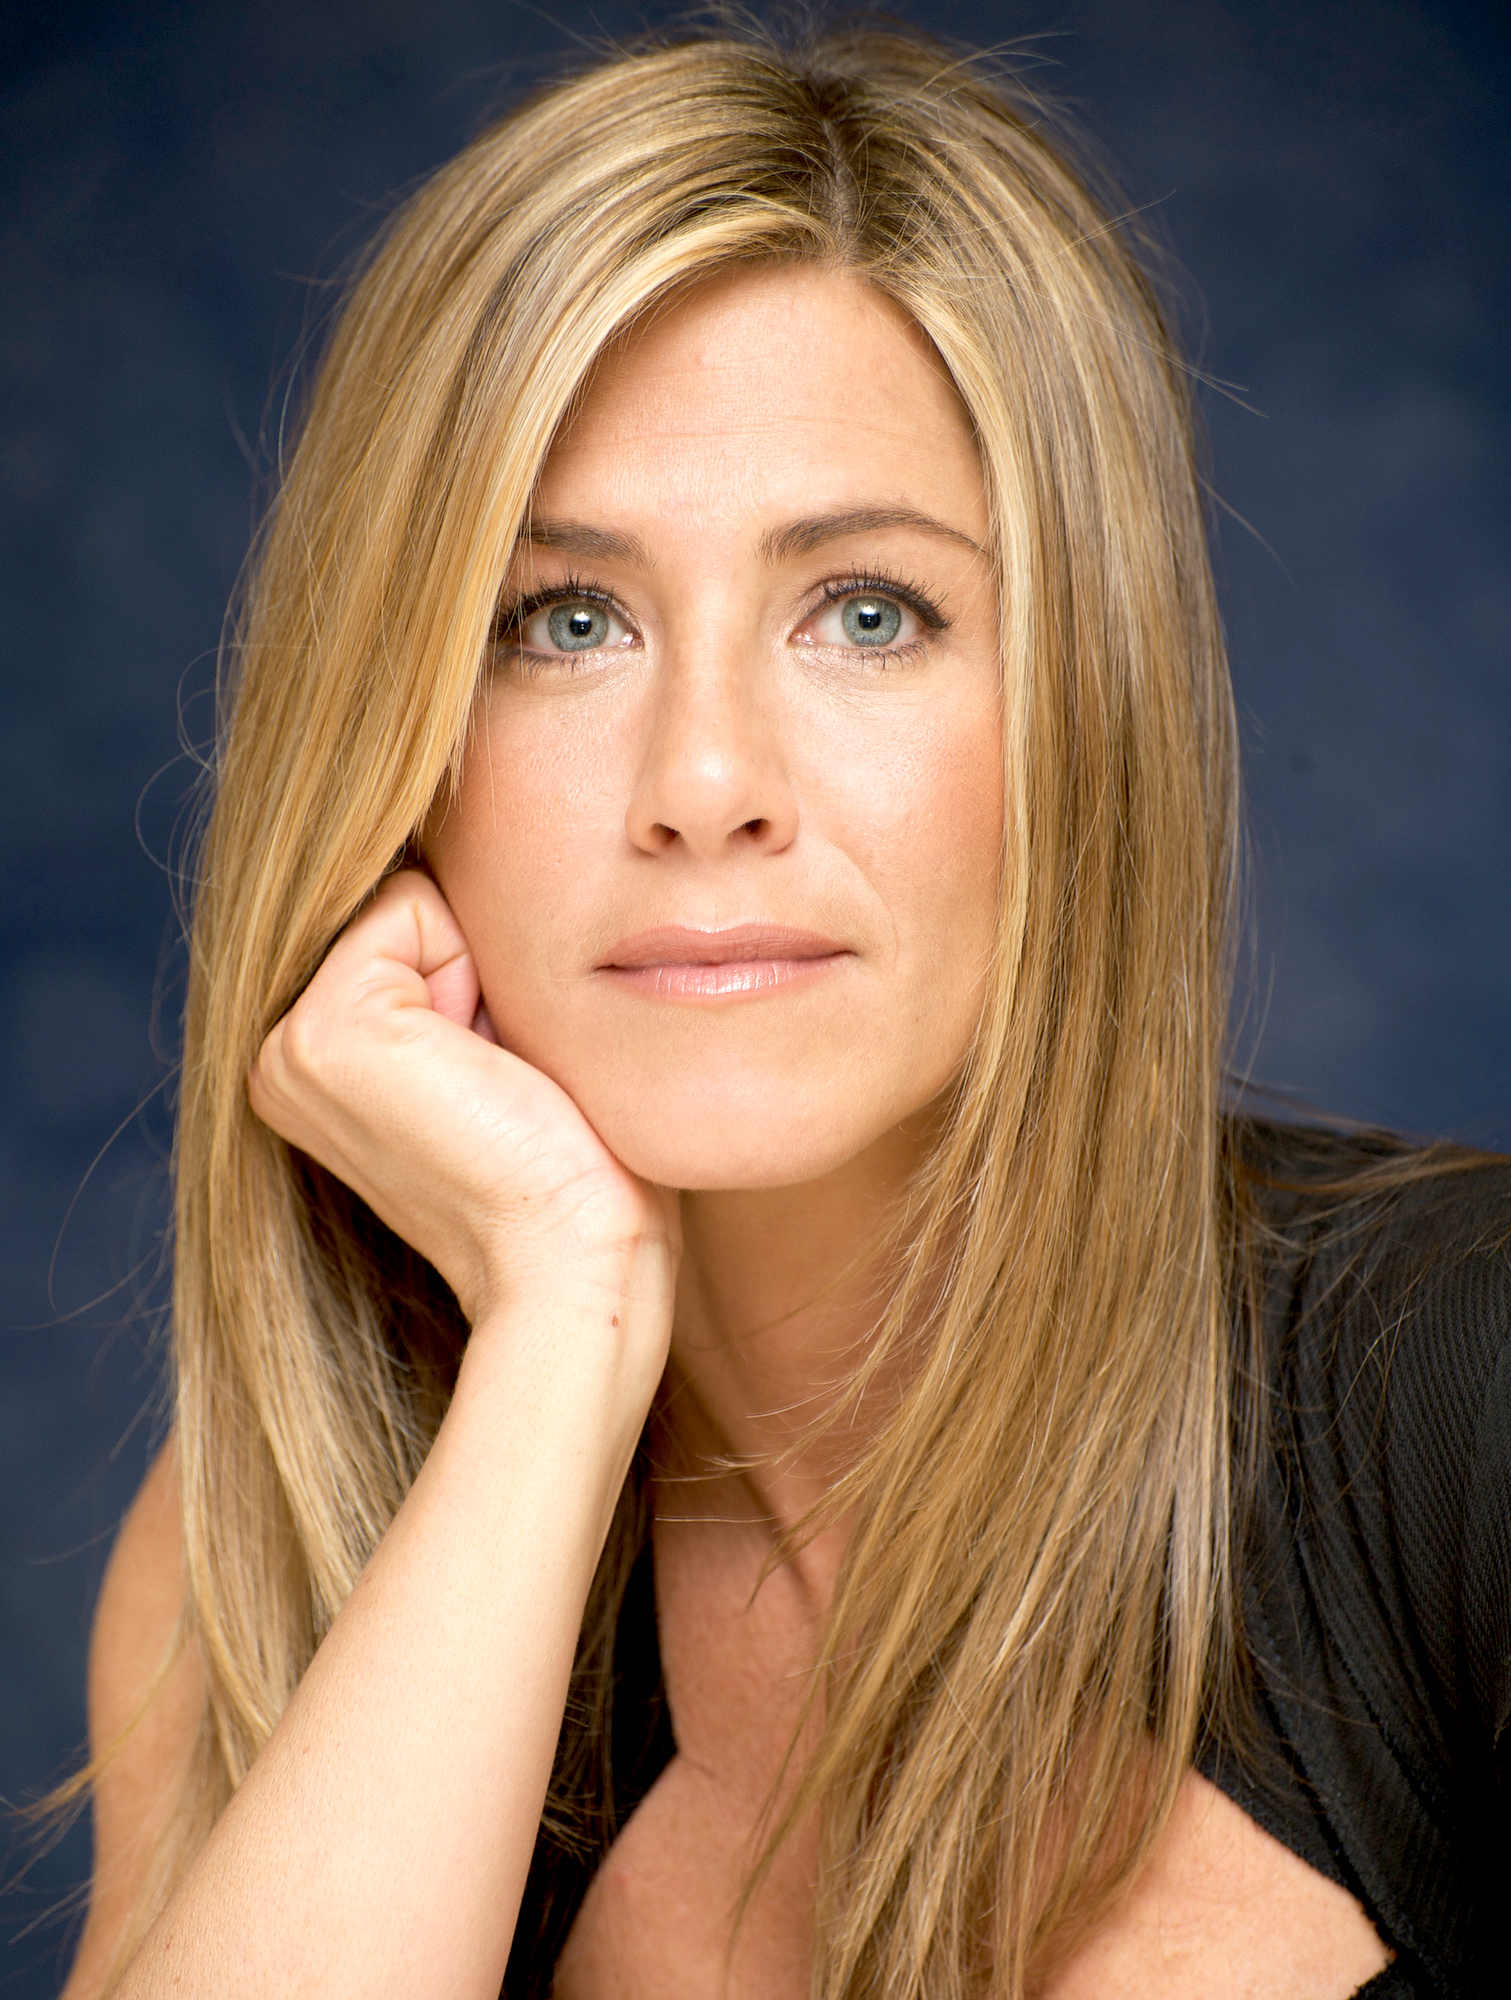 """jennifer-aniston-brad-pitt-divorce-relationship - The Dumplin ' actress got candid while speaking about Pitt and his relationship with Angelina Jolie during an interview with Vogue in December 2008. """"There was stuff printed there that was definitely from a time when I was unaware that it was happening,"""" she said of stories told about their split. """"I felt those details were a little inappropriate to discuss. That stuff about how she couldn't wait to get to work every day? That was really uncool."""""""